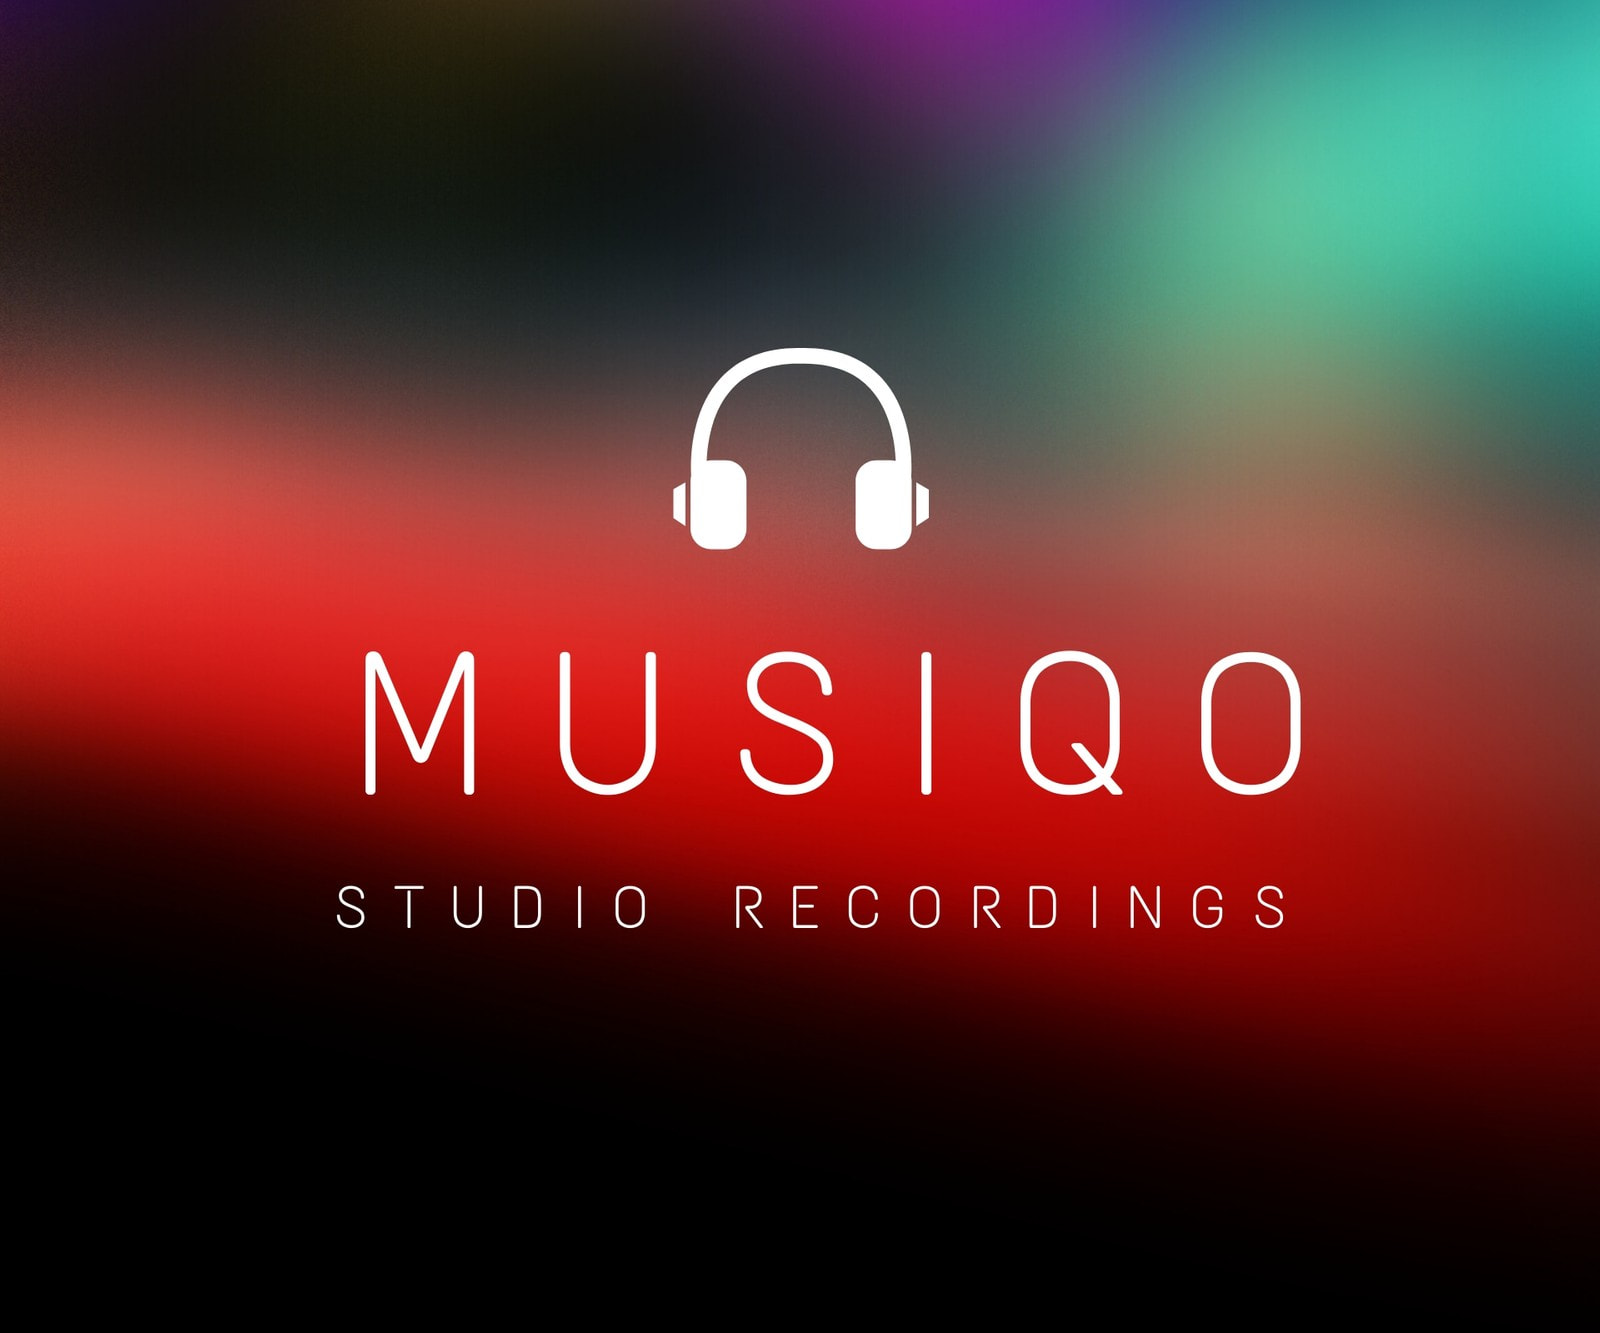 Blurred Photo Studio Recording Medium Rectangle Banner